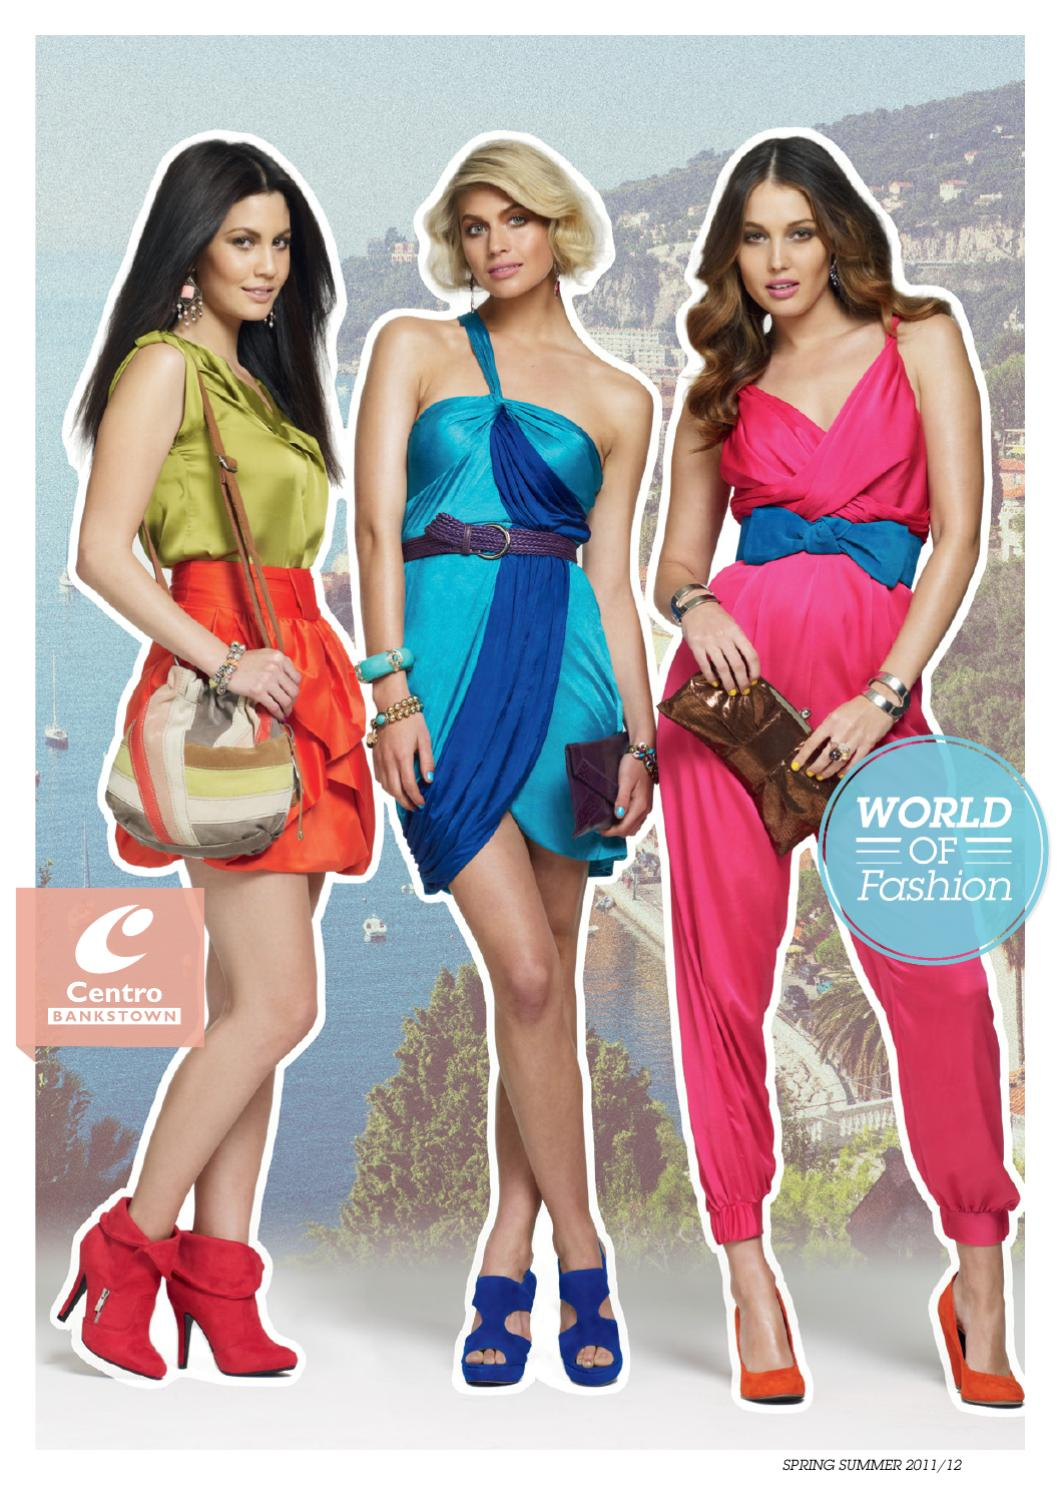 Centro Bankstown Spring Summer Fashion 2011 by Kastner and Partners - issuu 6e2e098dcd1f5